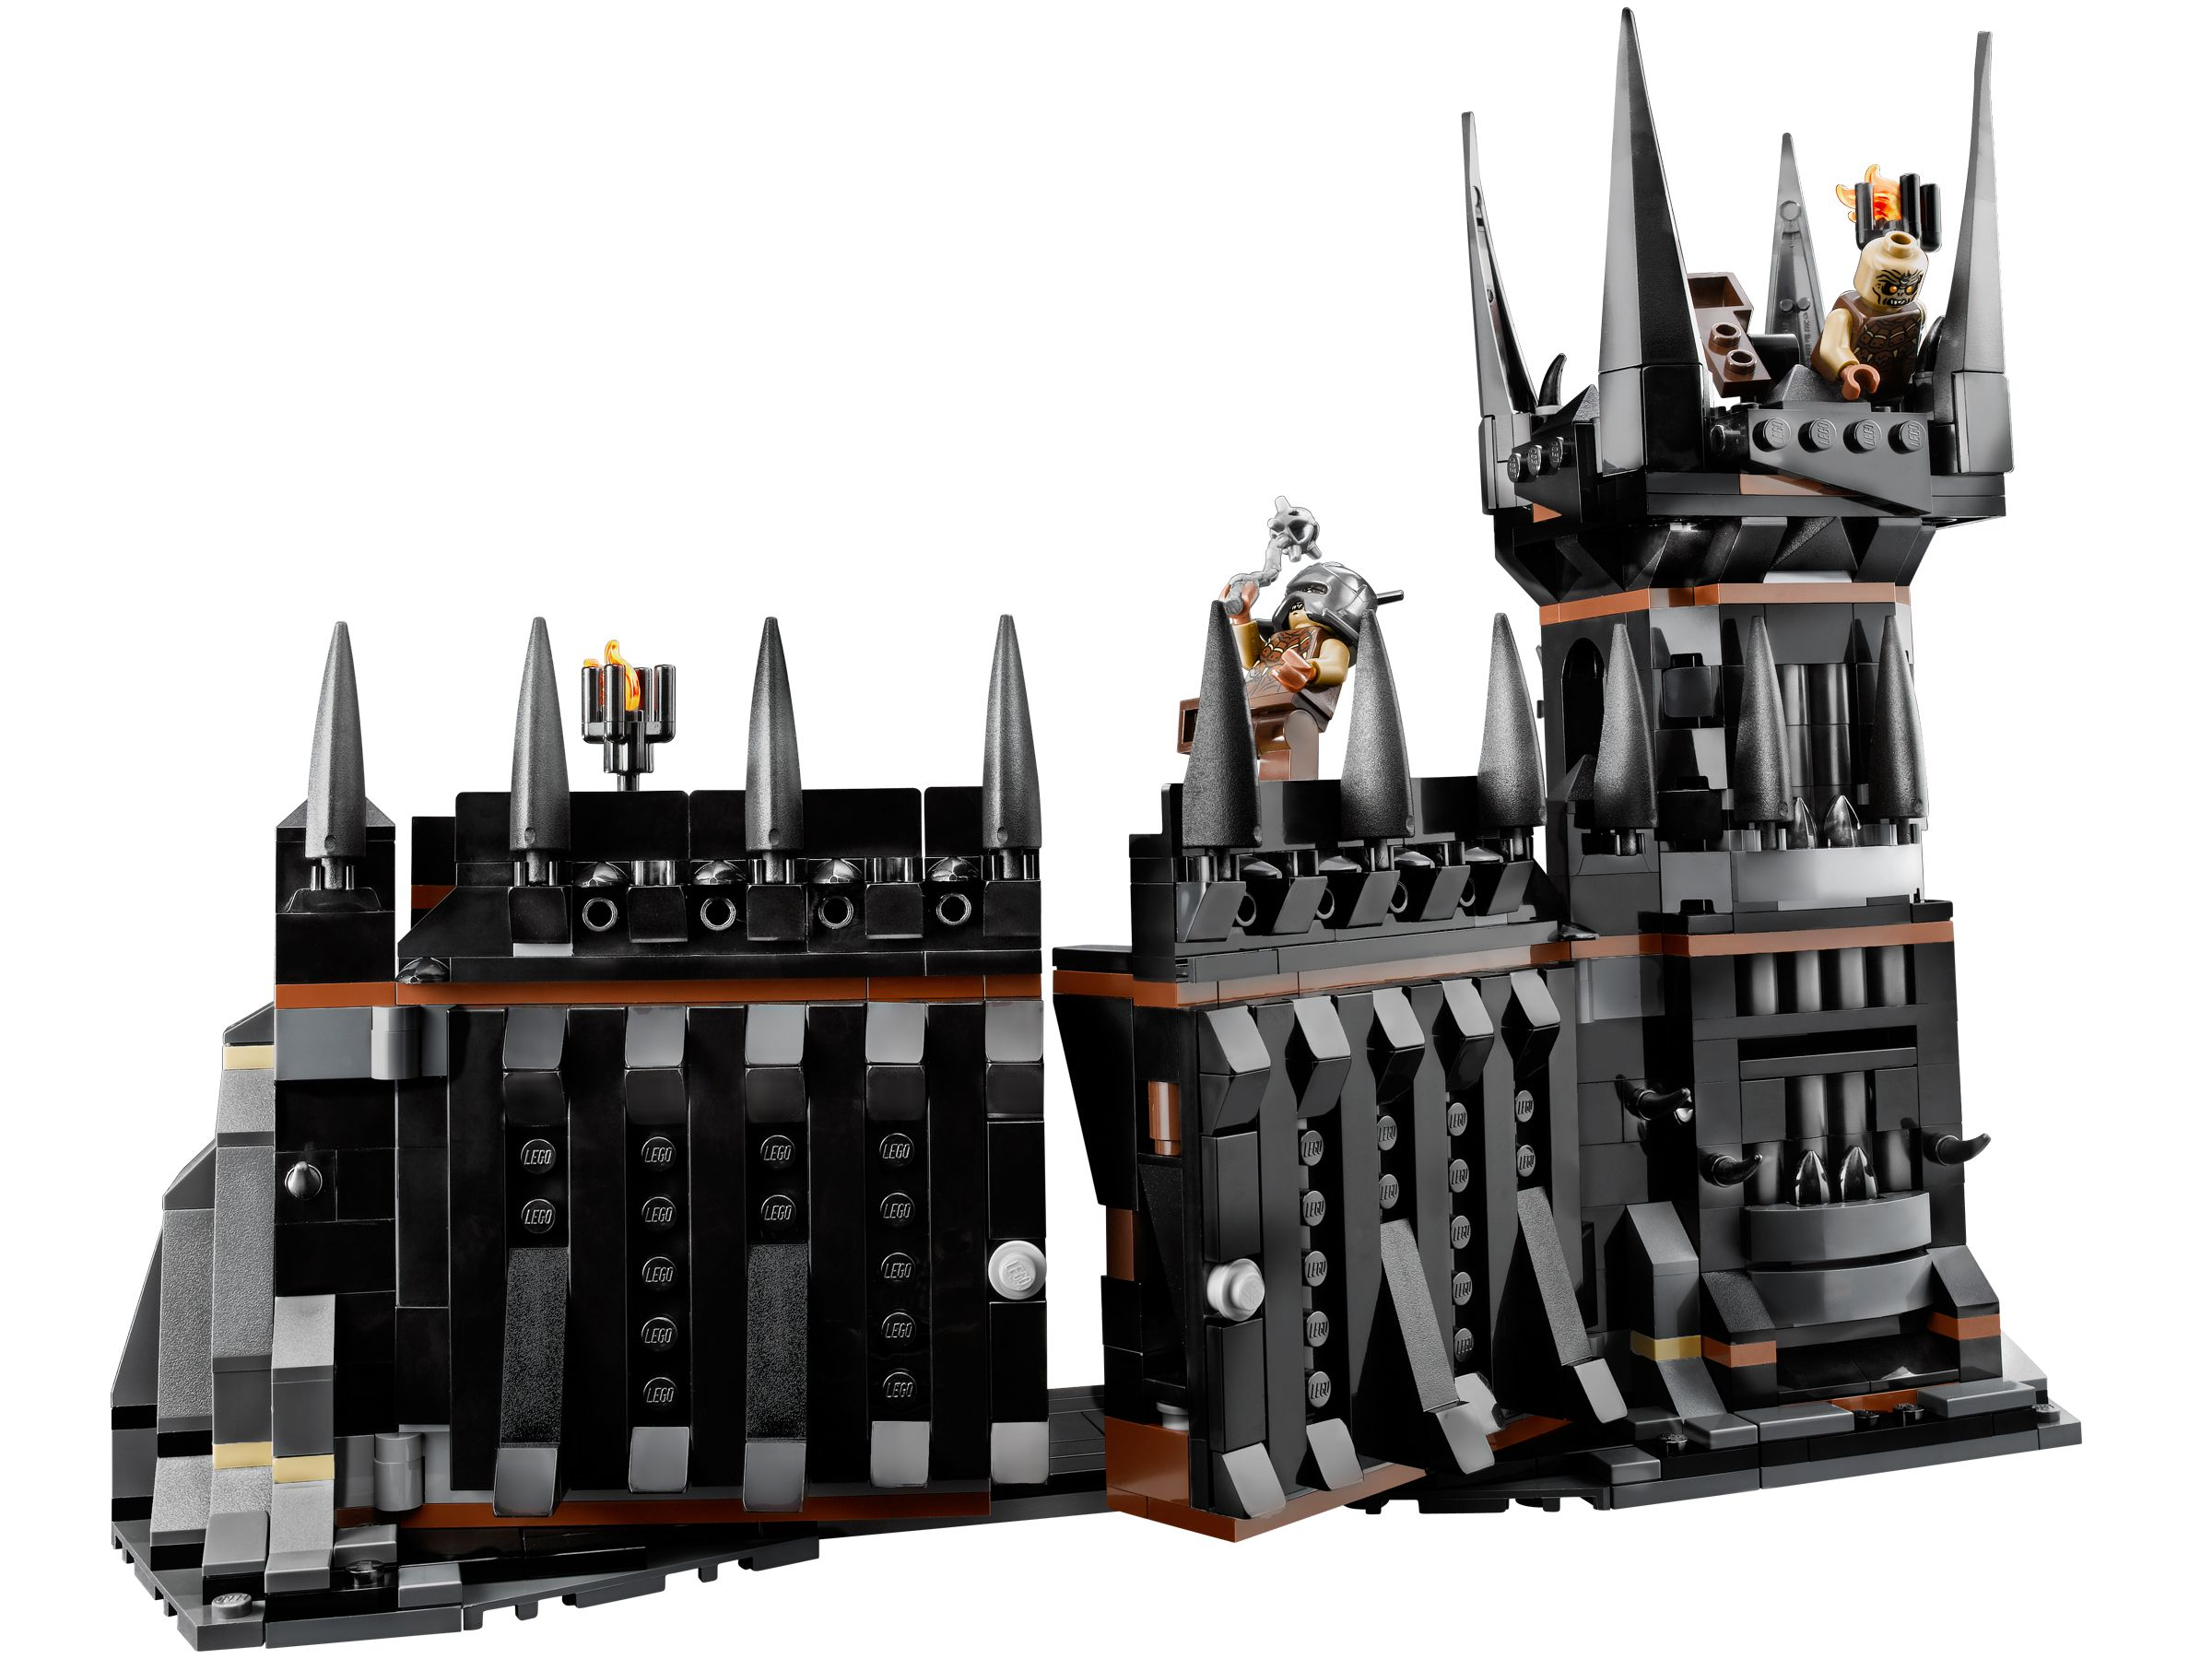 LEGO Lord of the Rings 79007 Die Schlacht am Schwarzen Tor LEGO_79007_alt2.jpg